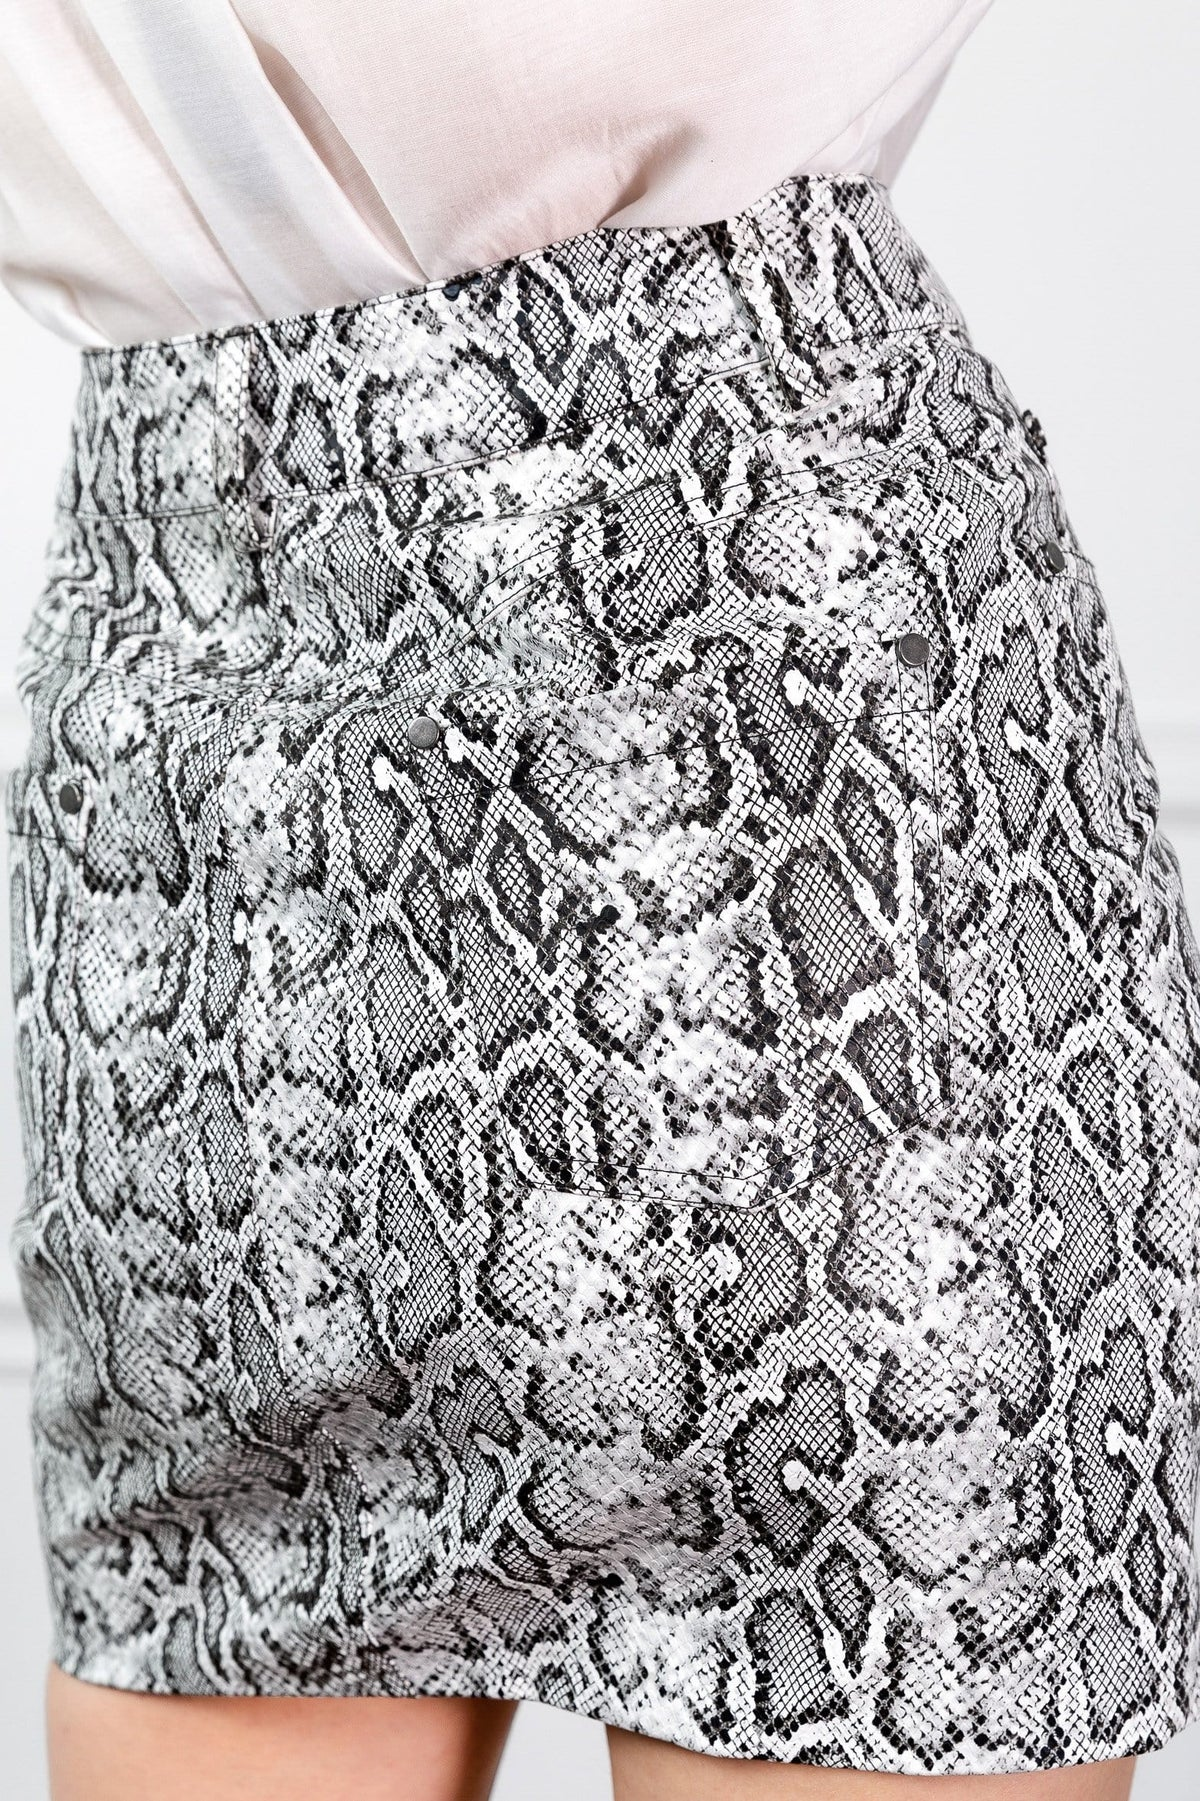 snake skin pattern short skirt by j.ing womens fashion